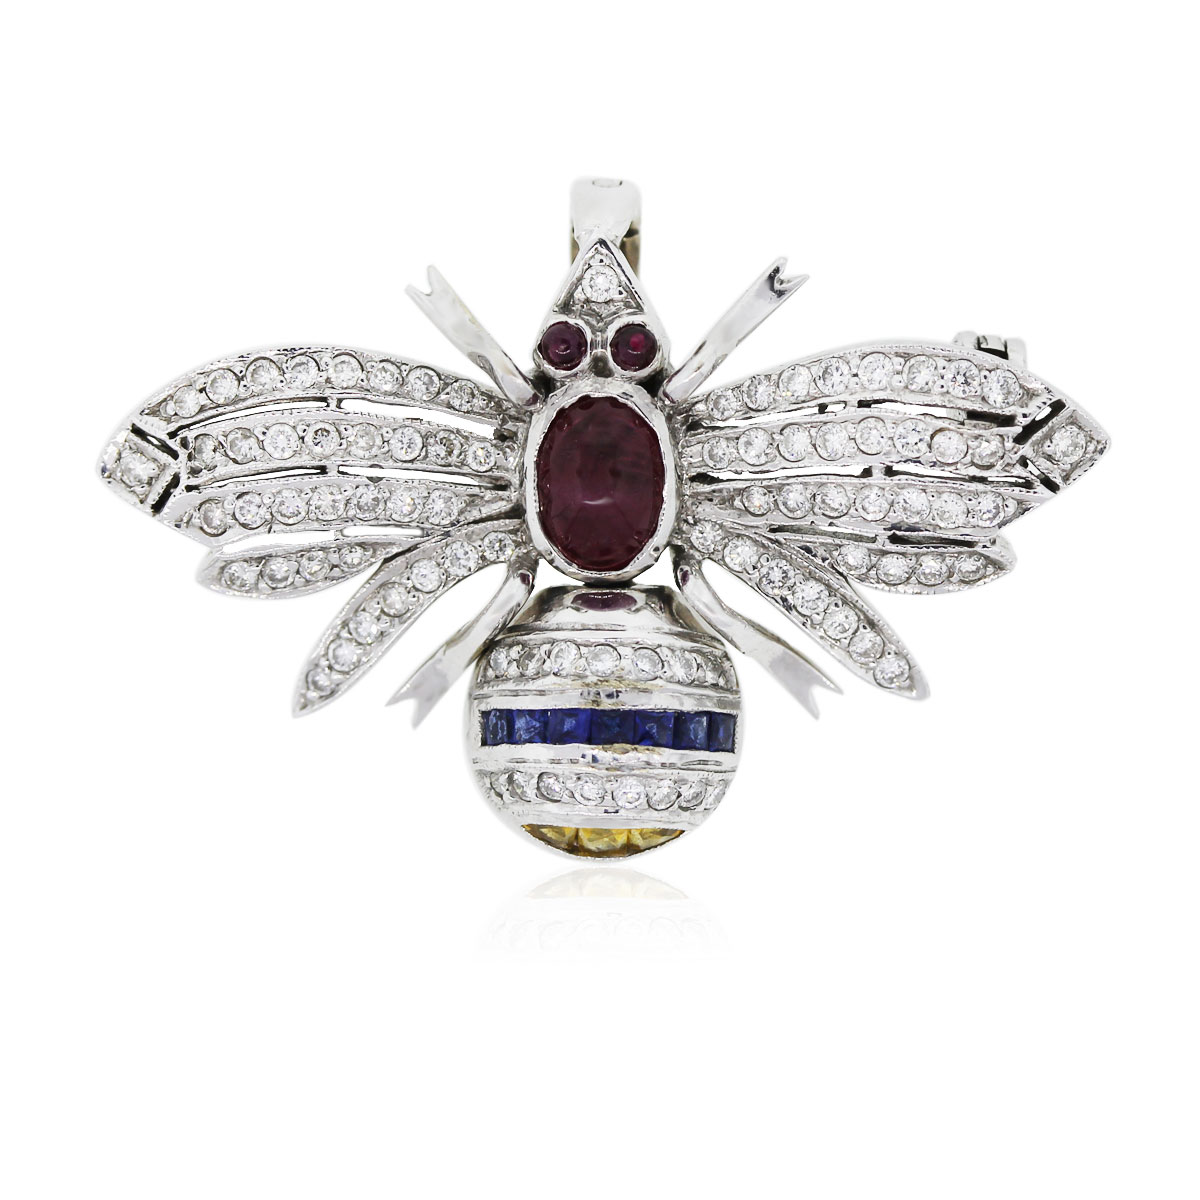 You are viewing this 18k White Gold and Diamonds With Precious Stones Bee Pin!